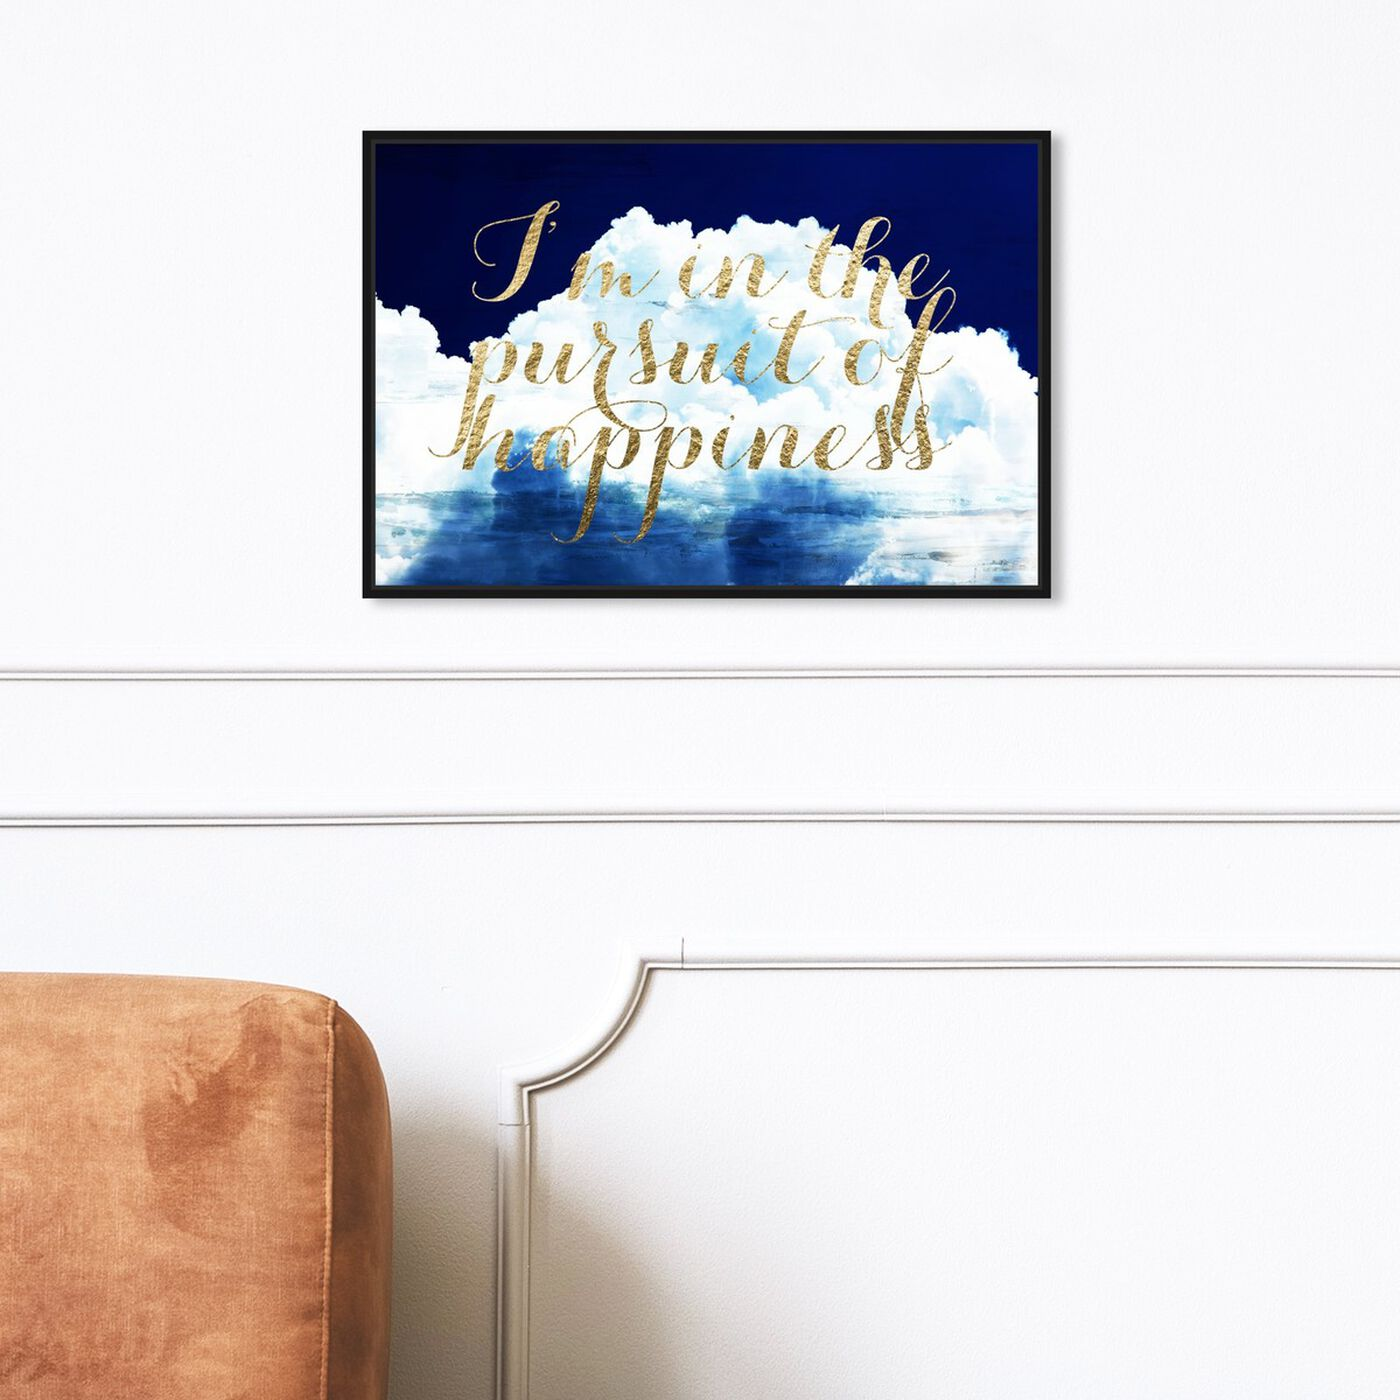 Hanging view of Happiness Overall featuring typography and quotes and inspirational quotes and sayings art.